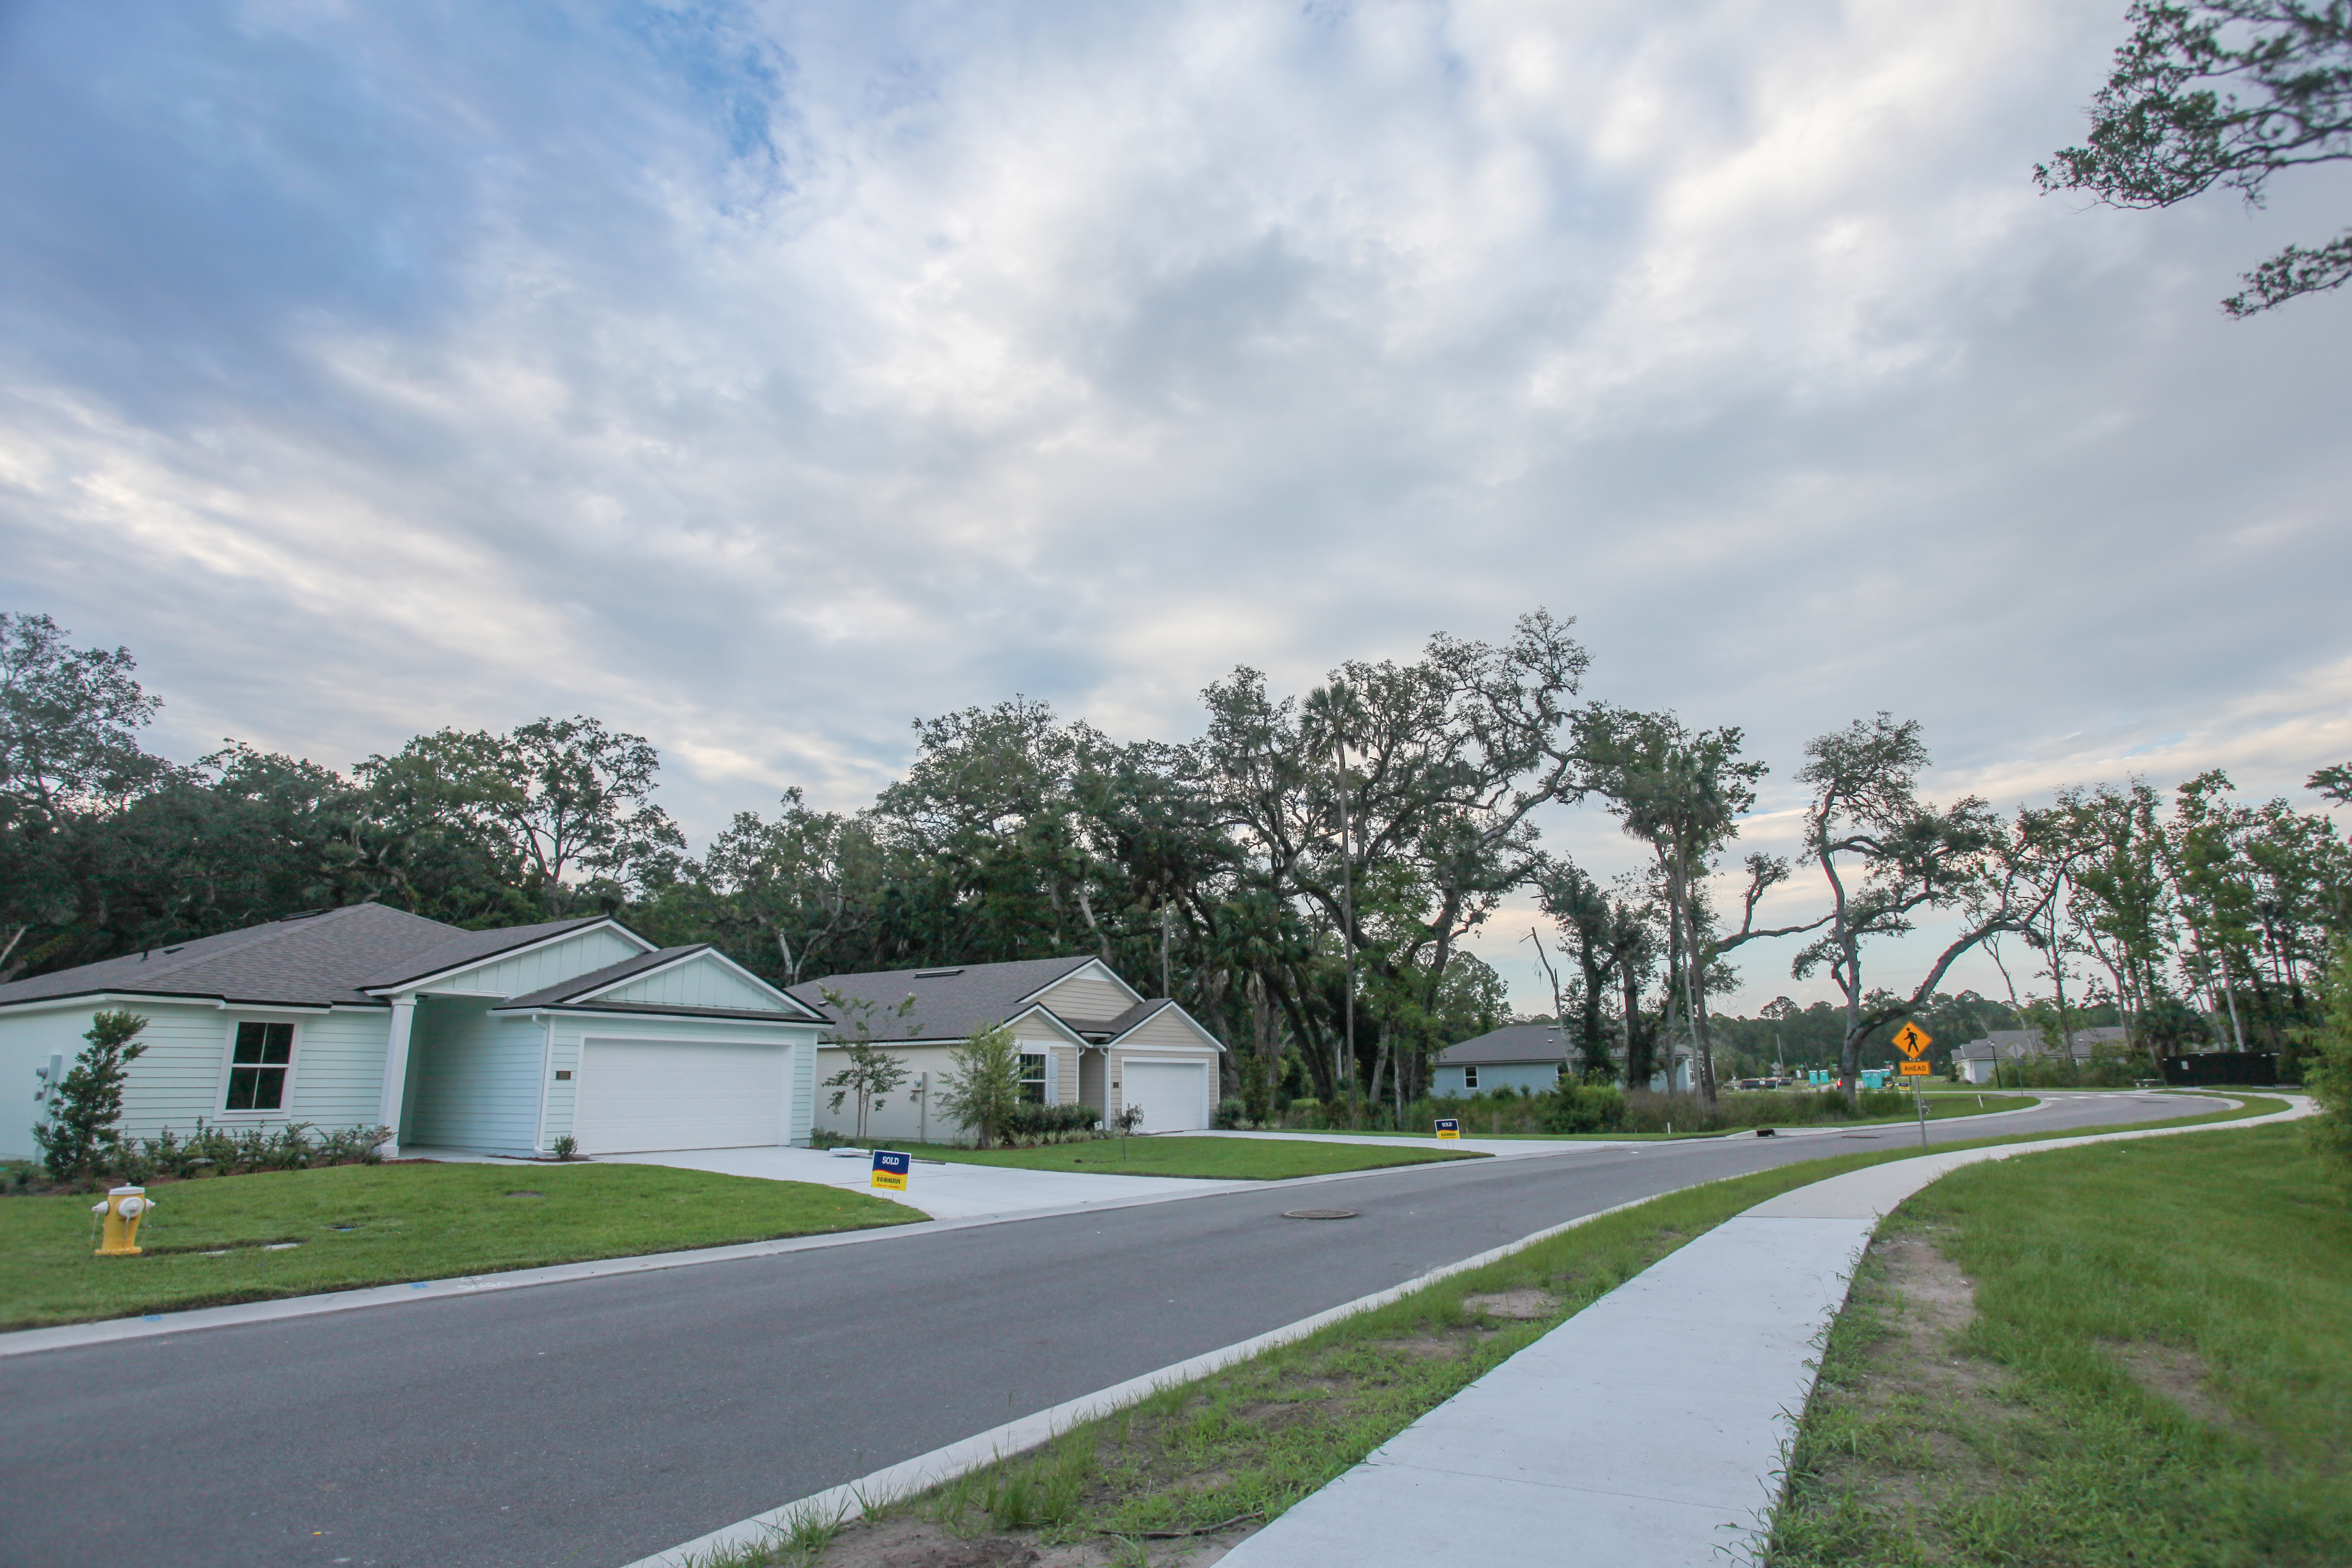 Photo of a roadway through the Chasewoods subdivision showing teal and tan houses